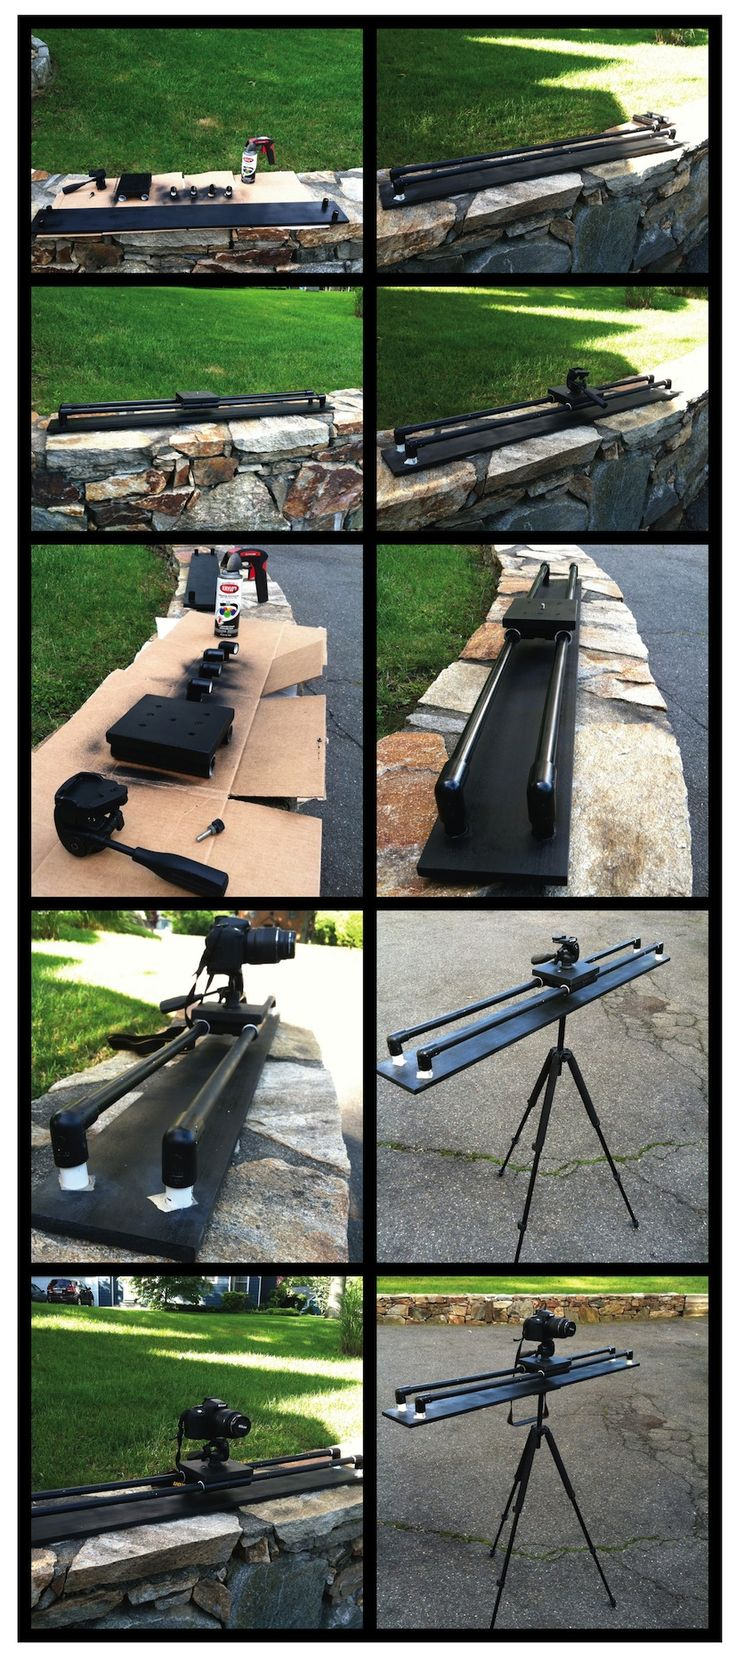 DIY for my Nikon D3100 DSLR Camera Slider... Glide Track  Took some pics along the way... I used an exisiting tripod that i have to use and bought some pvc pipe and fittings and bought a 4ft pine board at homedepot for platform and had some extra wood laying around for balancing plate and top slider piece where camera mounts.